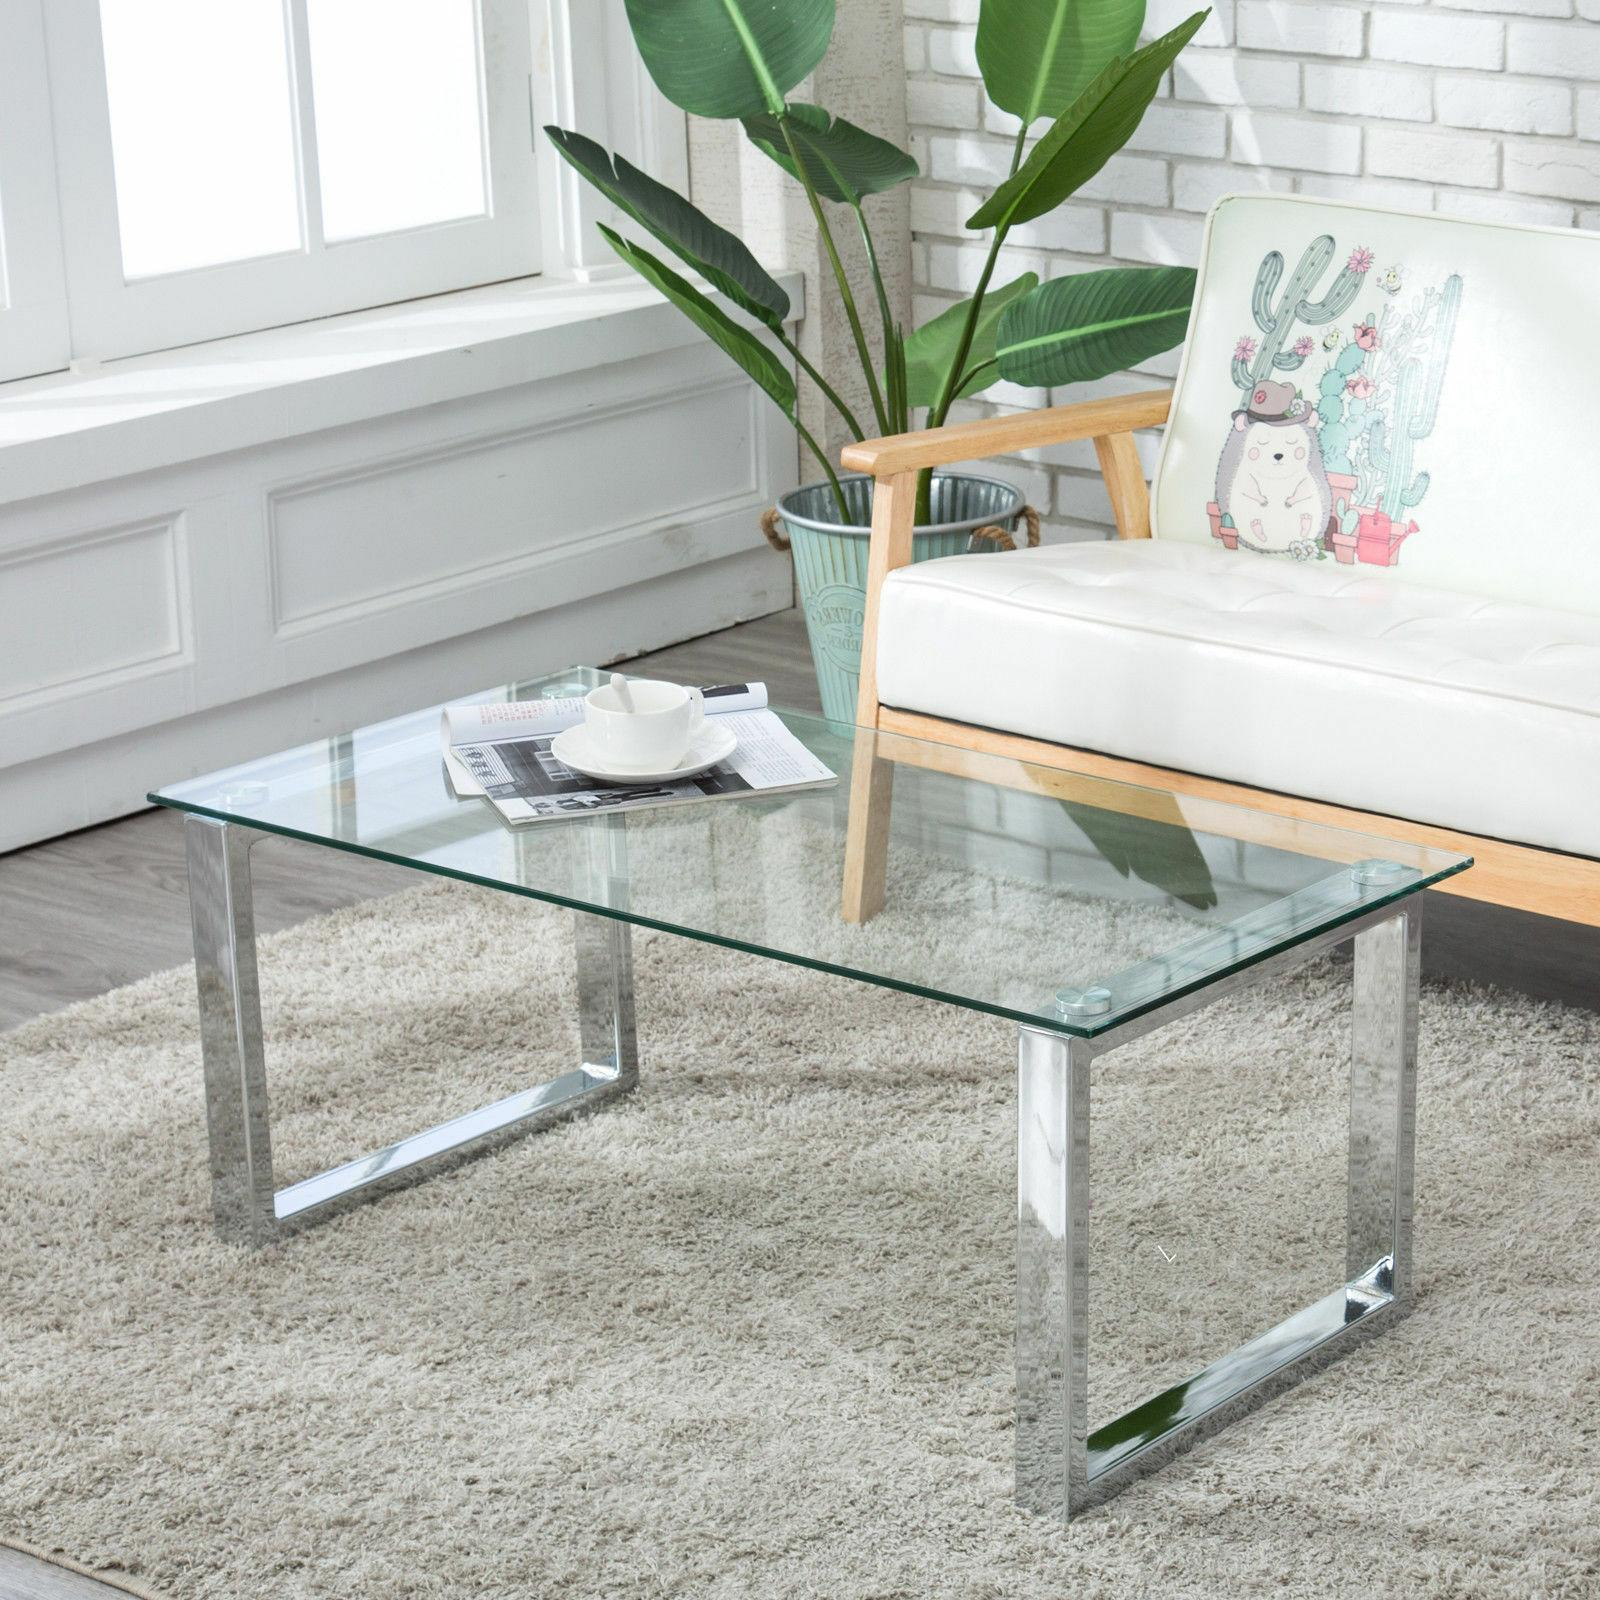 Modern Glass Chrome Coffee Table End Side w/ Shelves Living Room Furniture